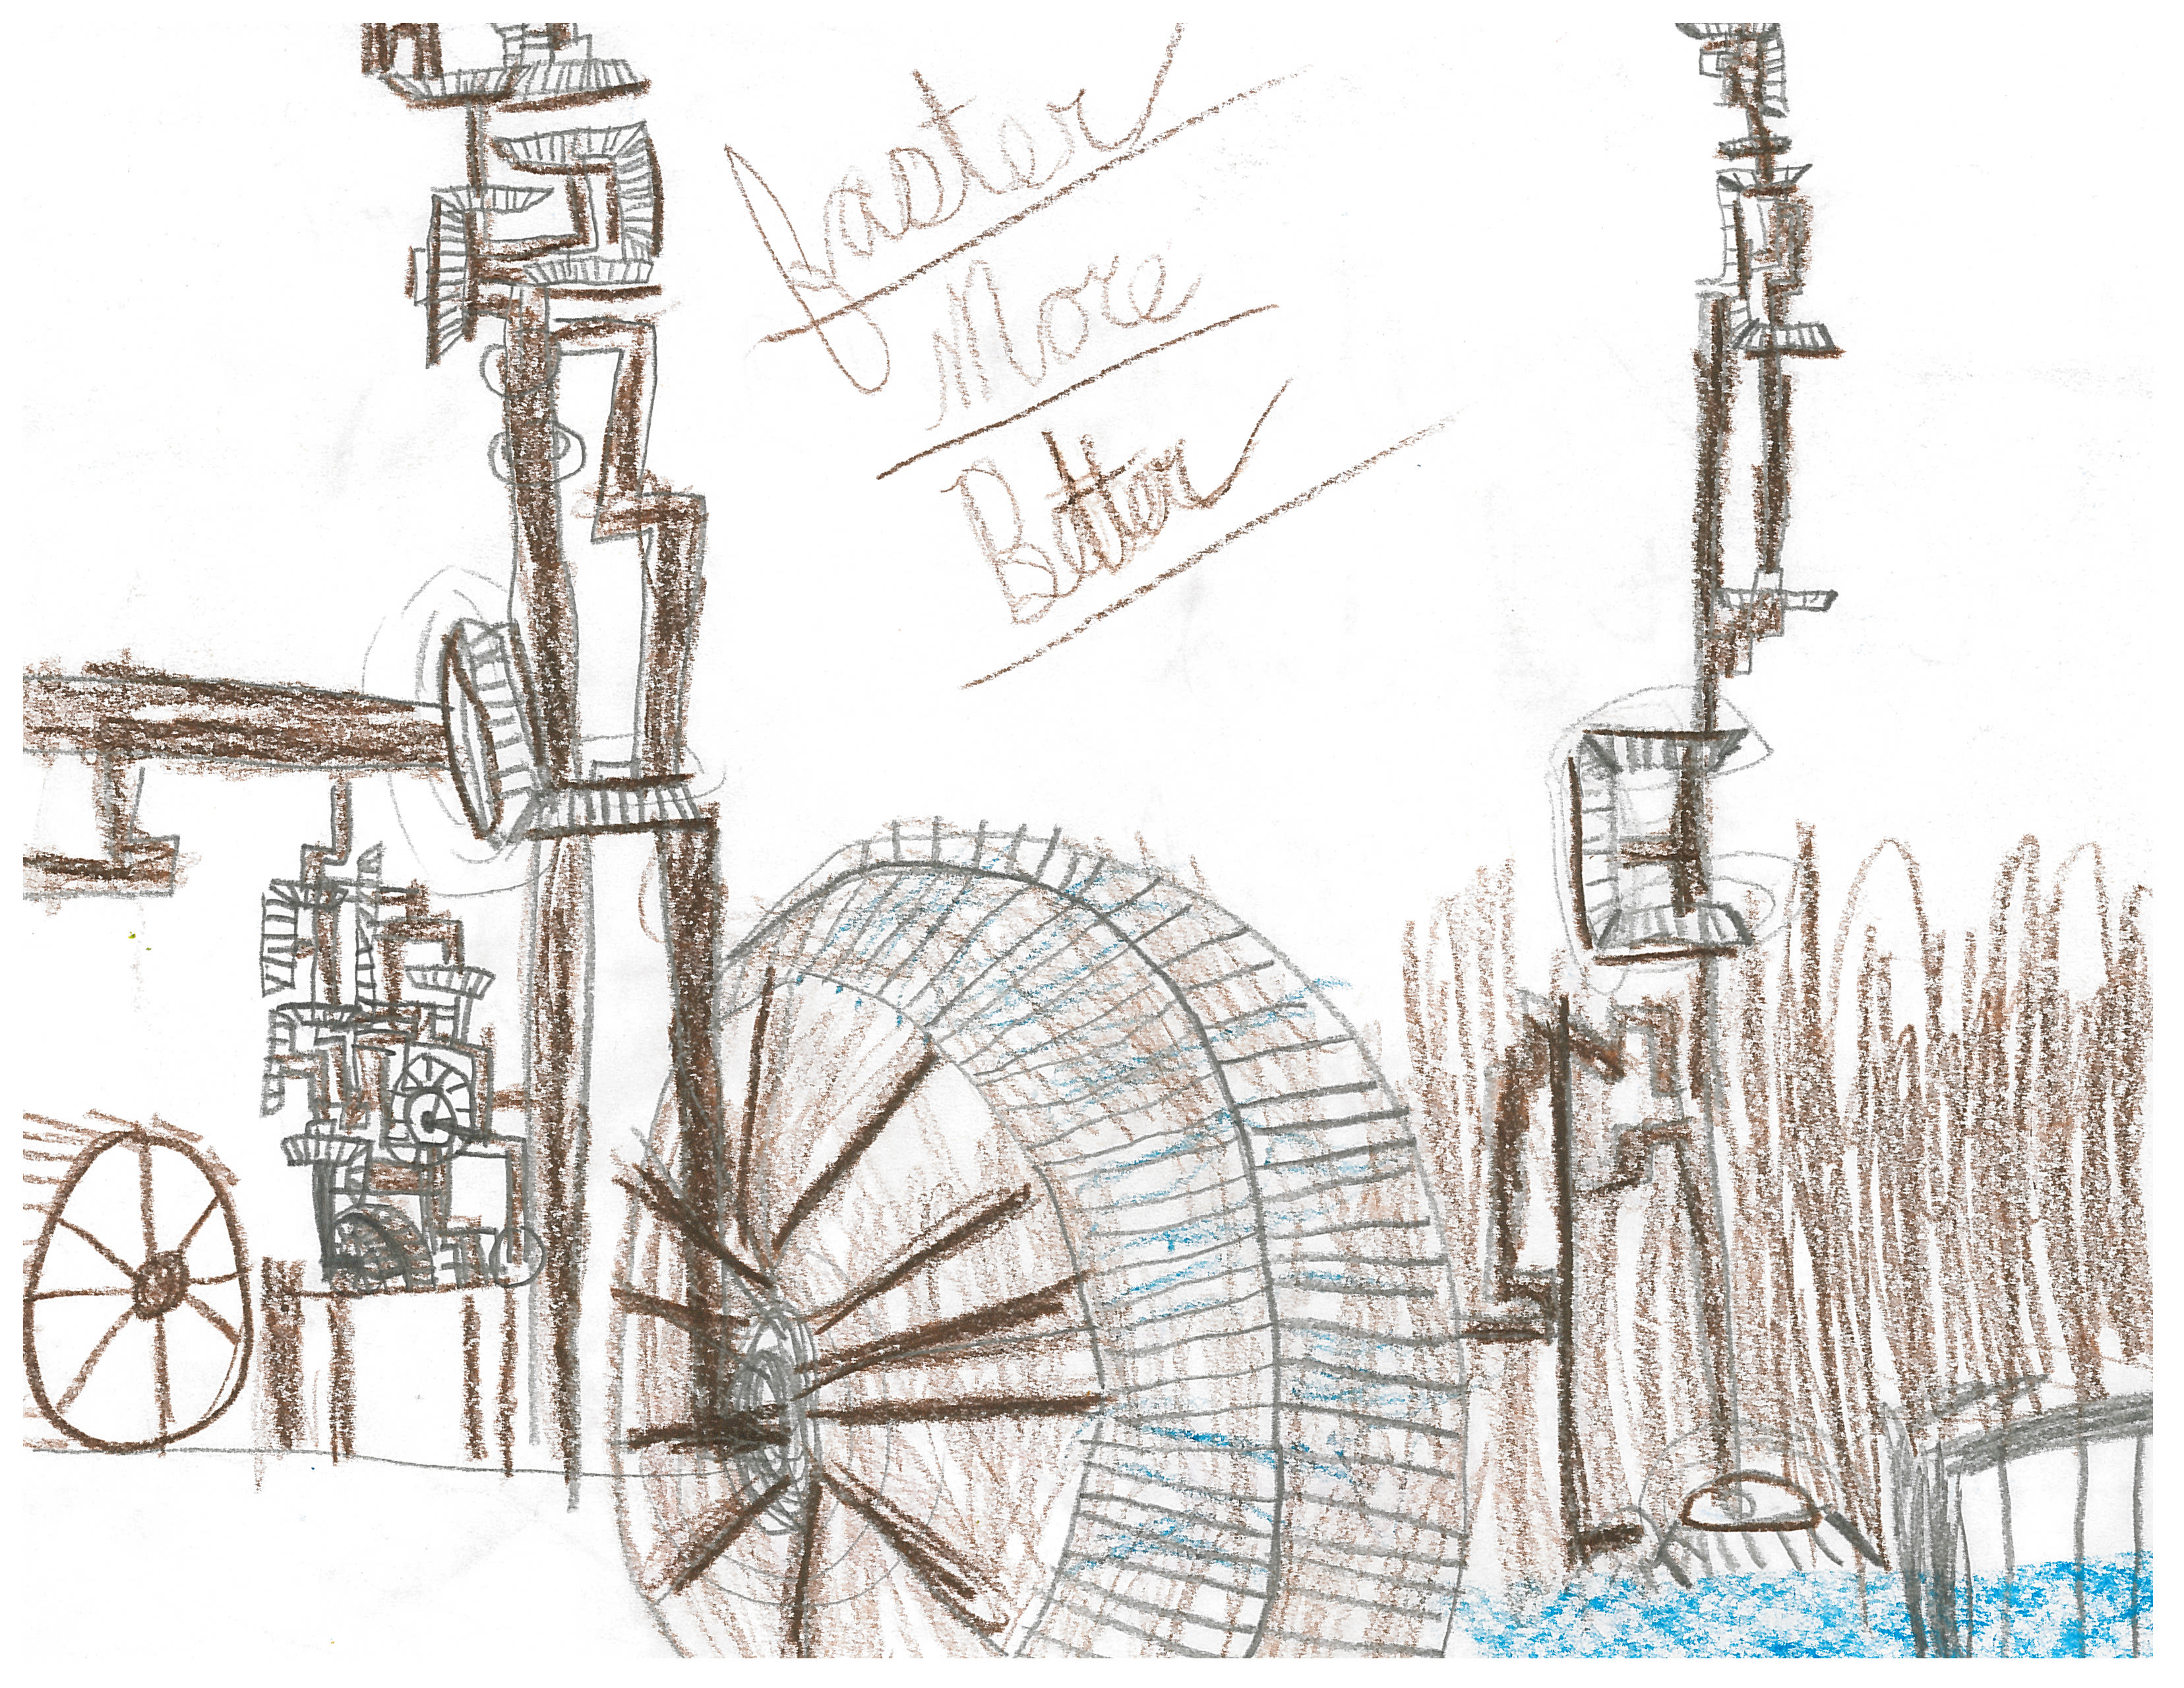 3312x2560 Child's Drawing Of Their Field Trip To Slater Mill. The Industrial